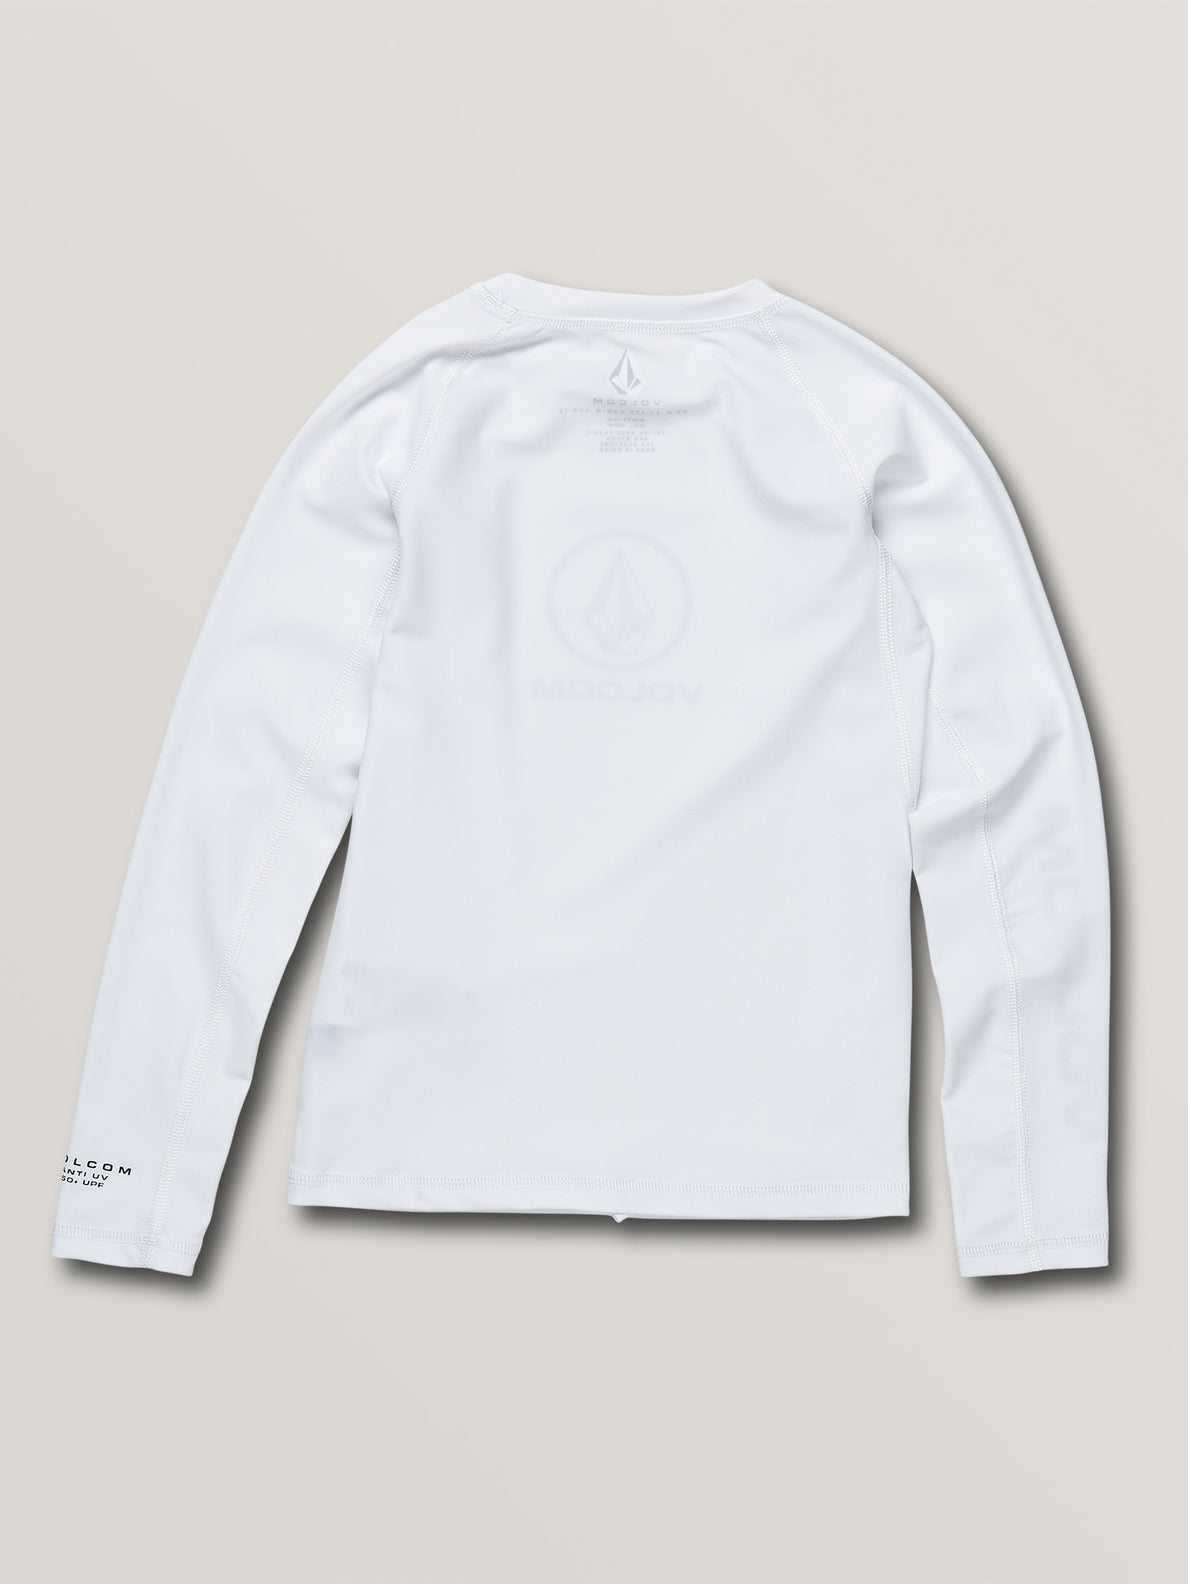 Lido Solid L/s By Wht-White (P0311900_WHT) [B]